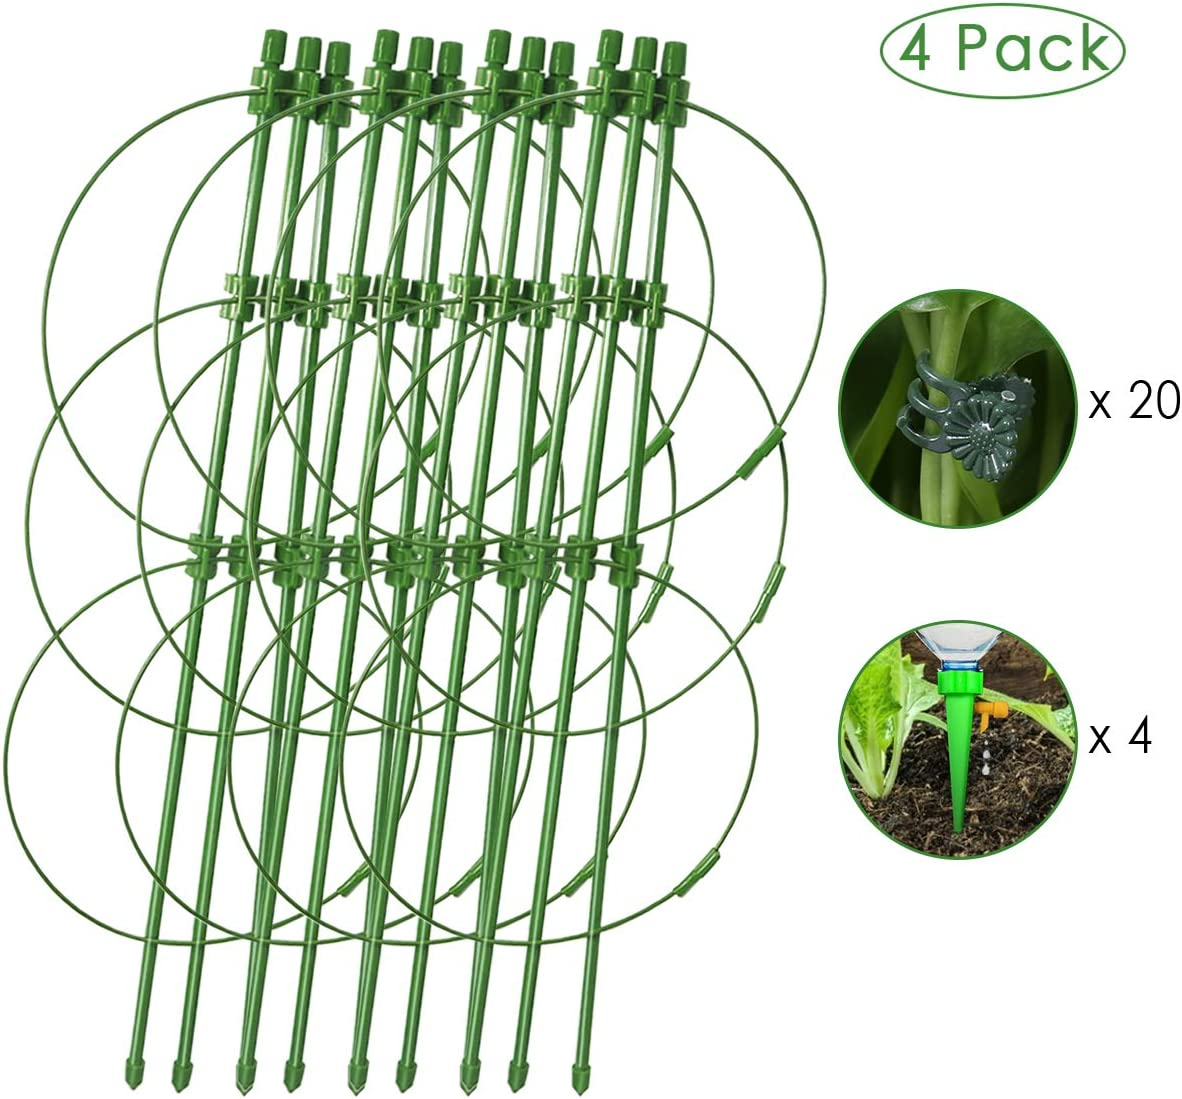 """Plant Support Stake (18""""), 4 Pack Green Round Plant Support Ring, Garden Plant Stake with Plant Trellis Kits for Tomato, Rose, Vine , Plant Support Cages with 4 Self Watering Spikes and 20 Plant Clips"""